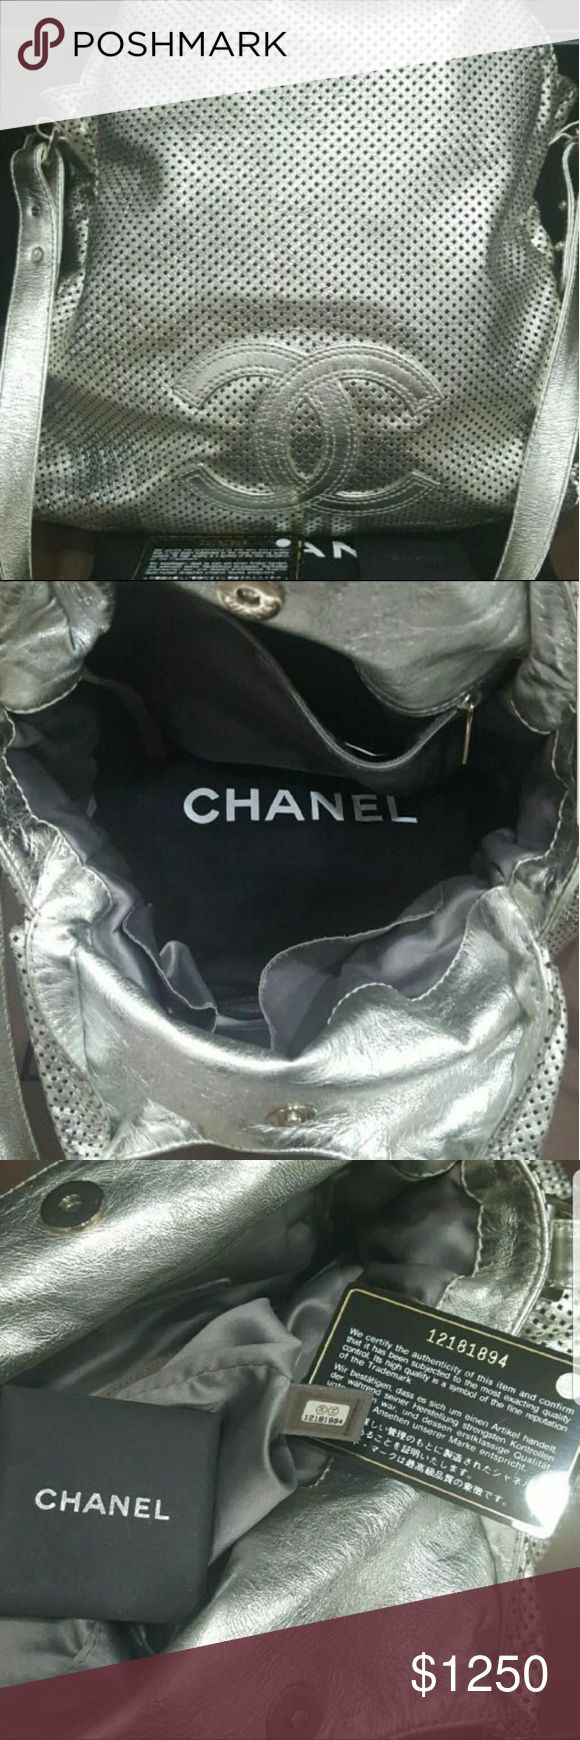 Authentic Chanel Rodeo Drive Silver Perforated Rare and a head turner! This is a collector's item. CHANEL Bags Shoulder Bags